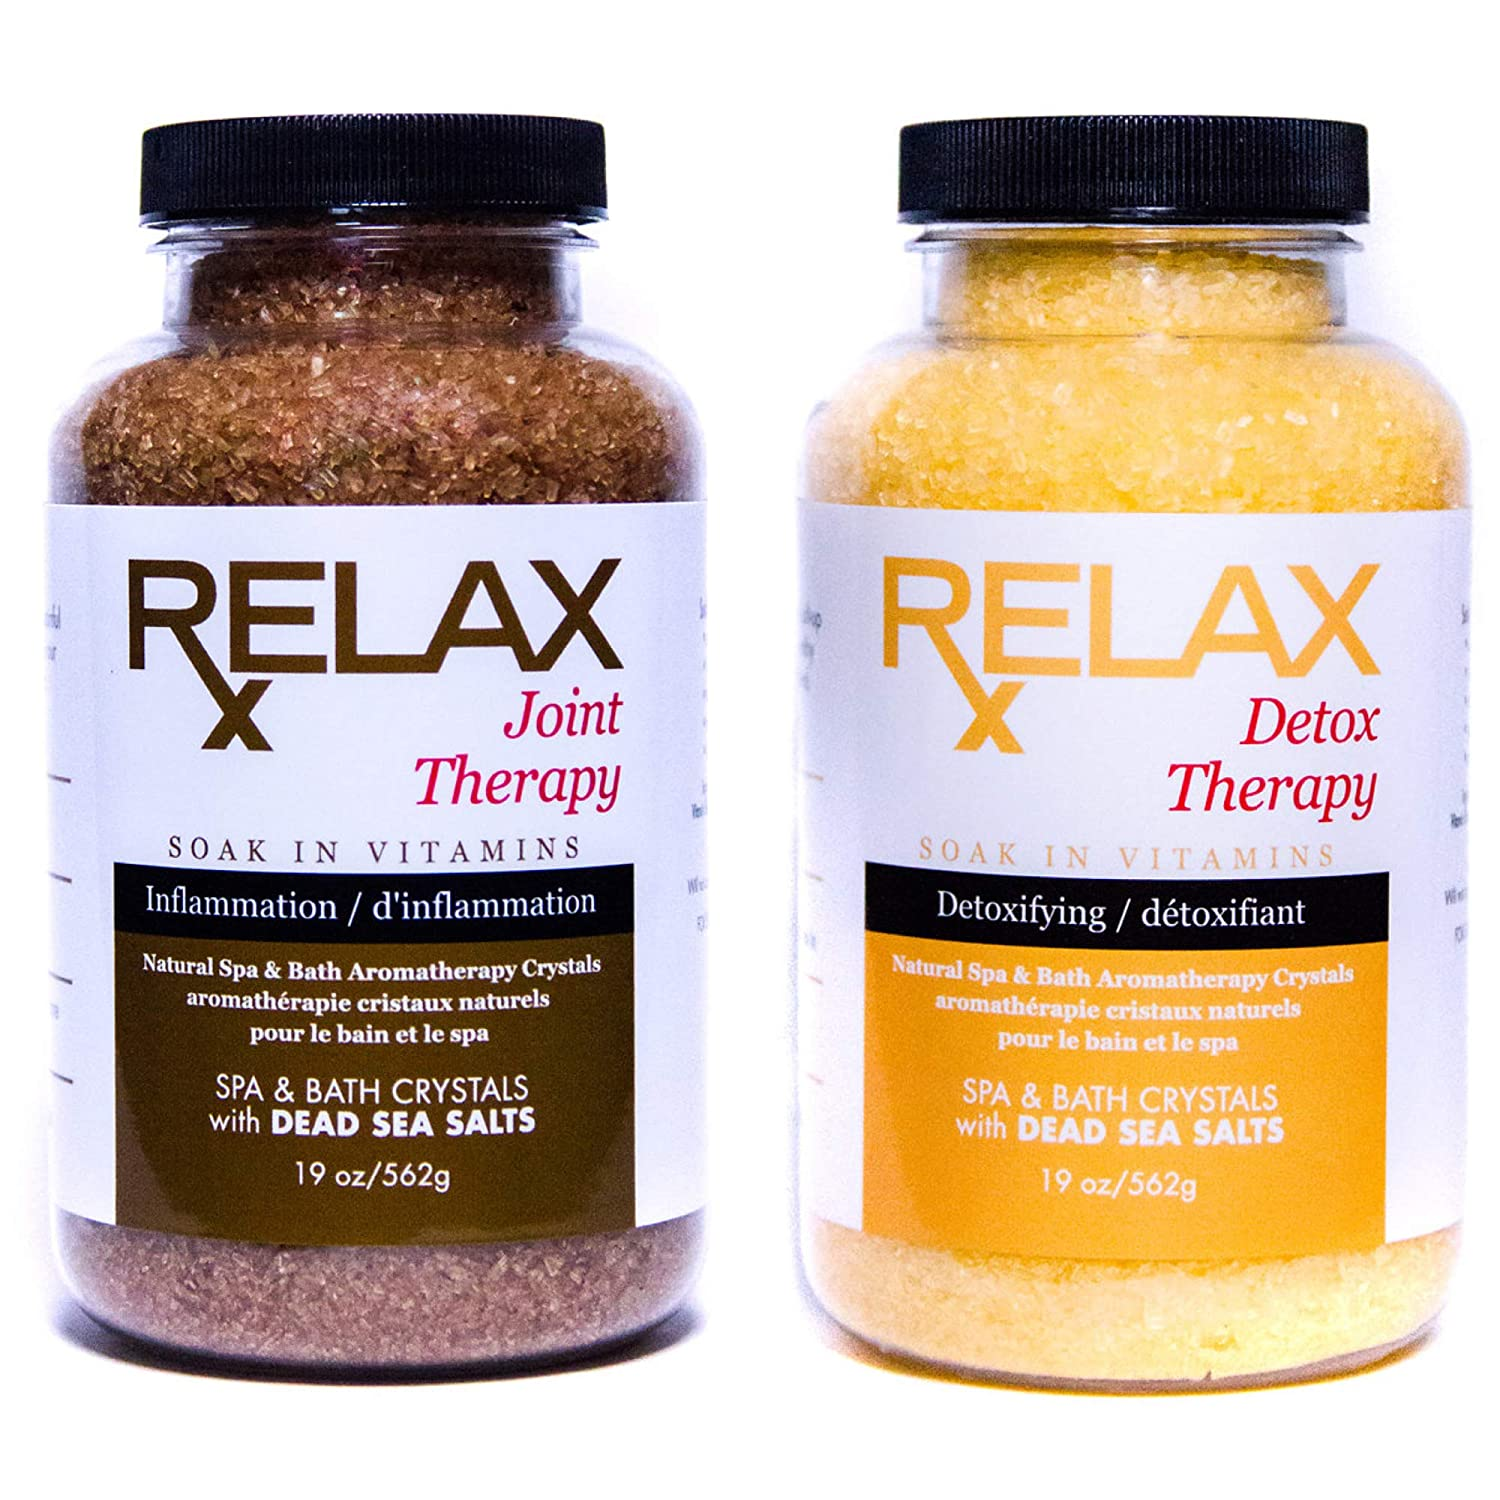 Natural Epsom Salt Infused with Aromatherapy (2 Pack) Premium Bath Salts - Dead Sea Salts - Essential Vitamins and Minerals for Aches, Pains, Cramps - Safe for Spa & Bath